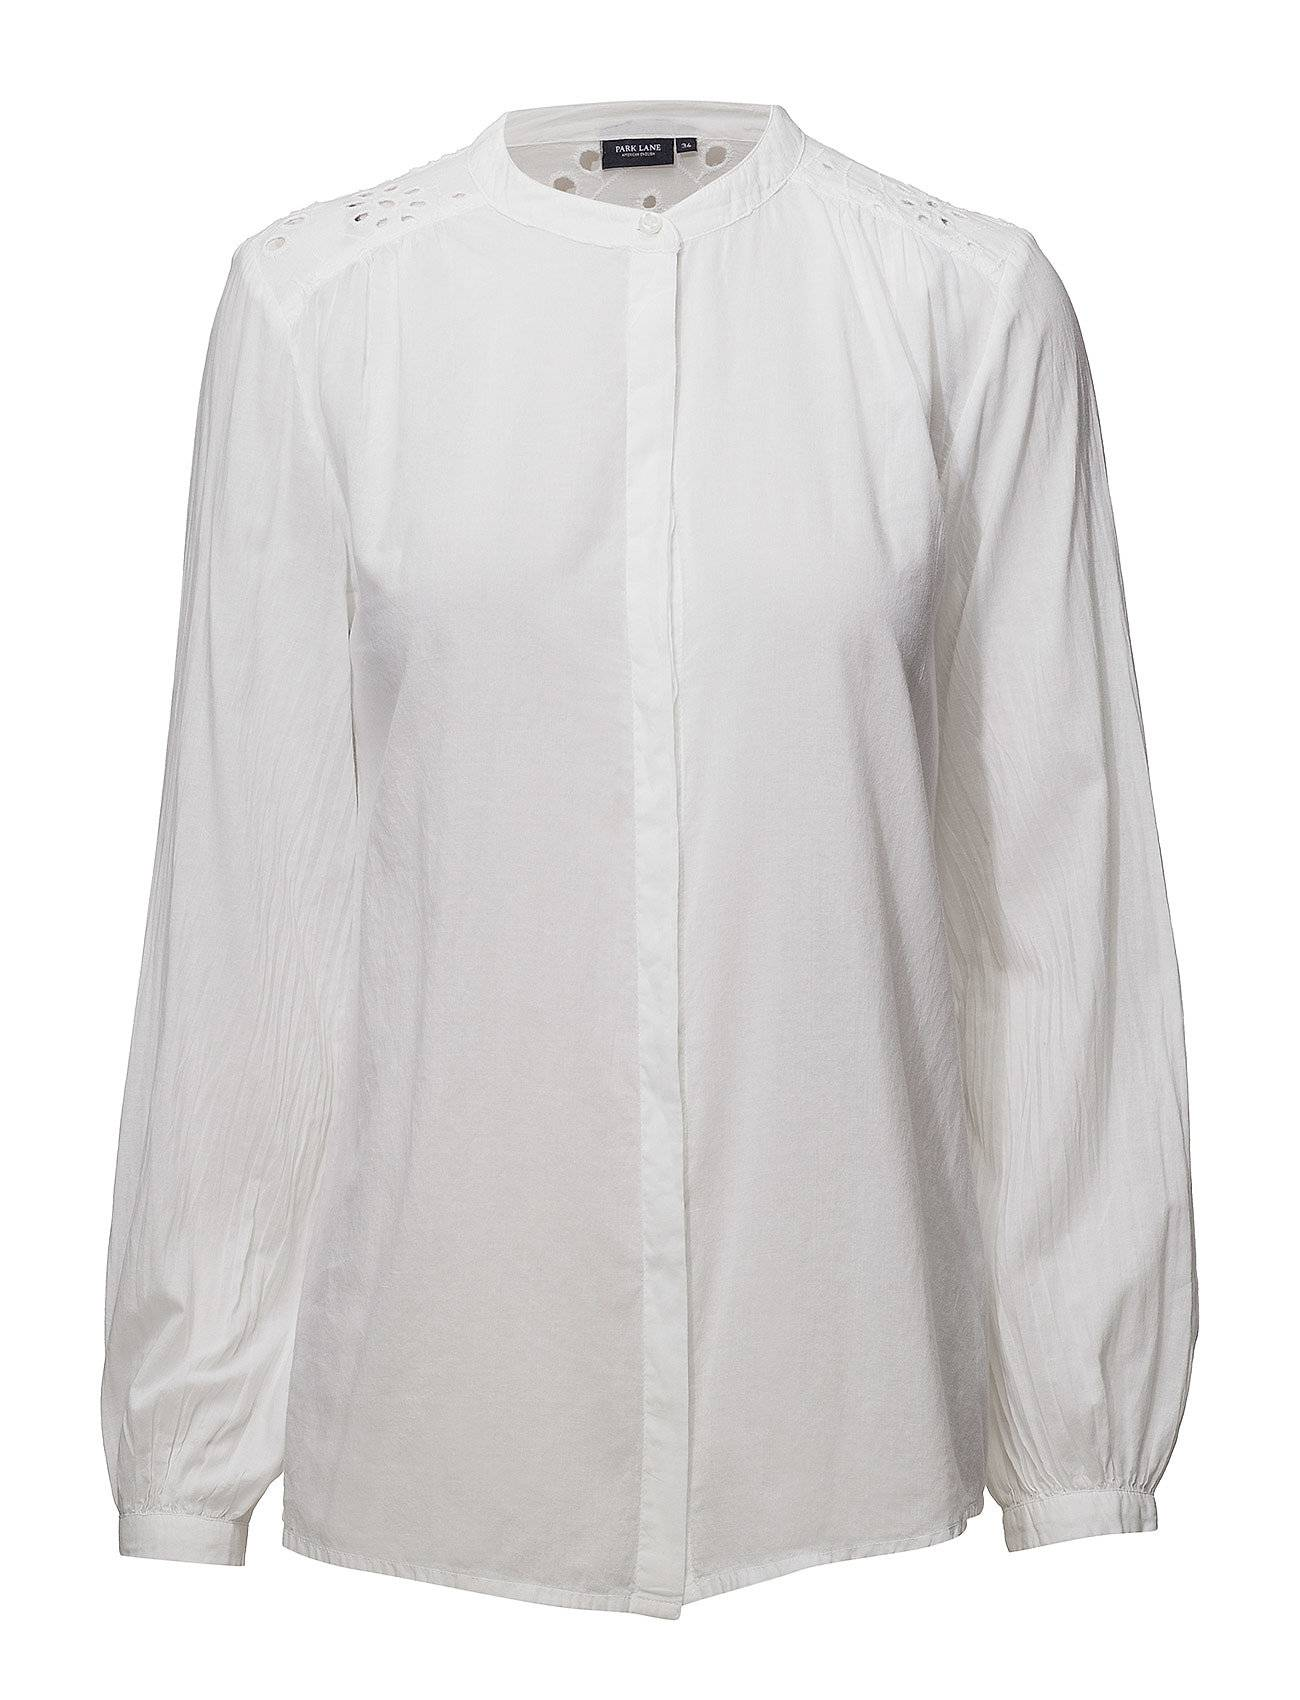 Park Lane Blouse With Broderi Anglaise